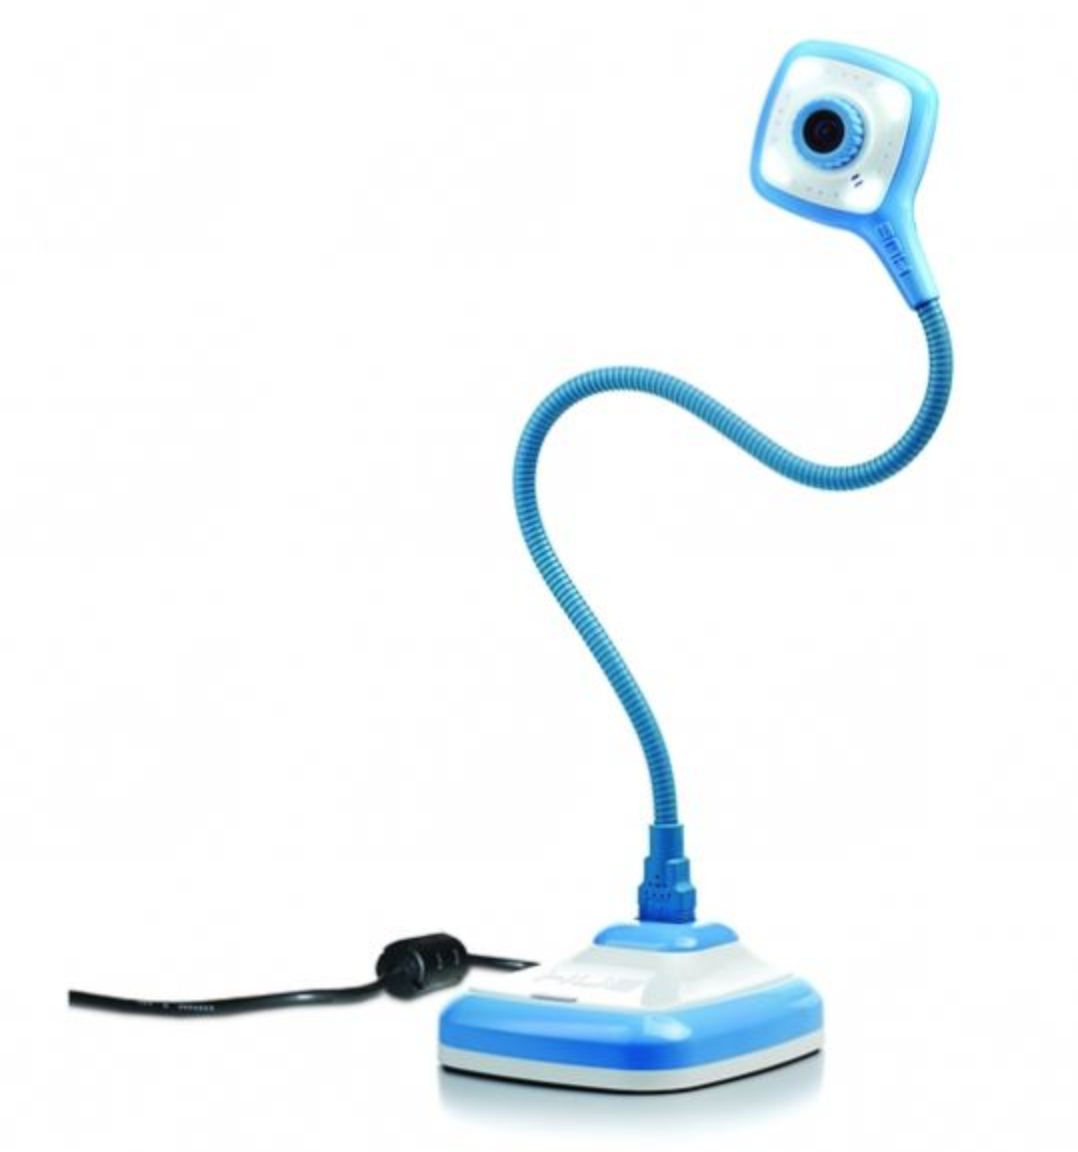 photo of USB document camera